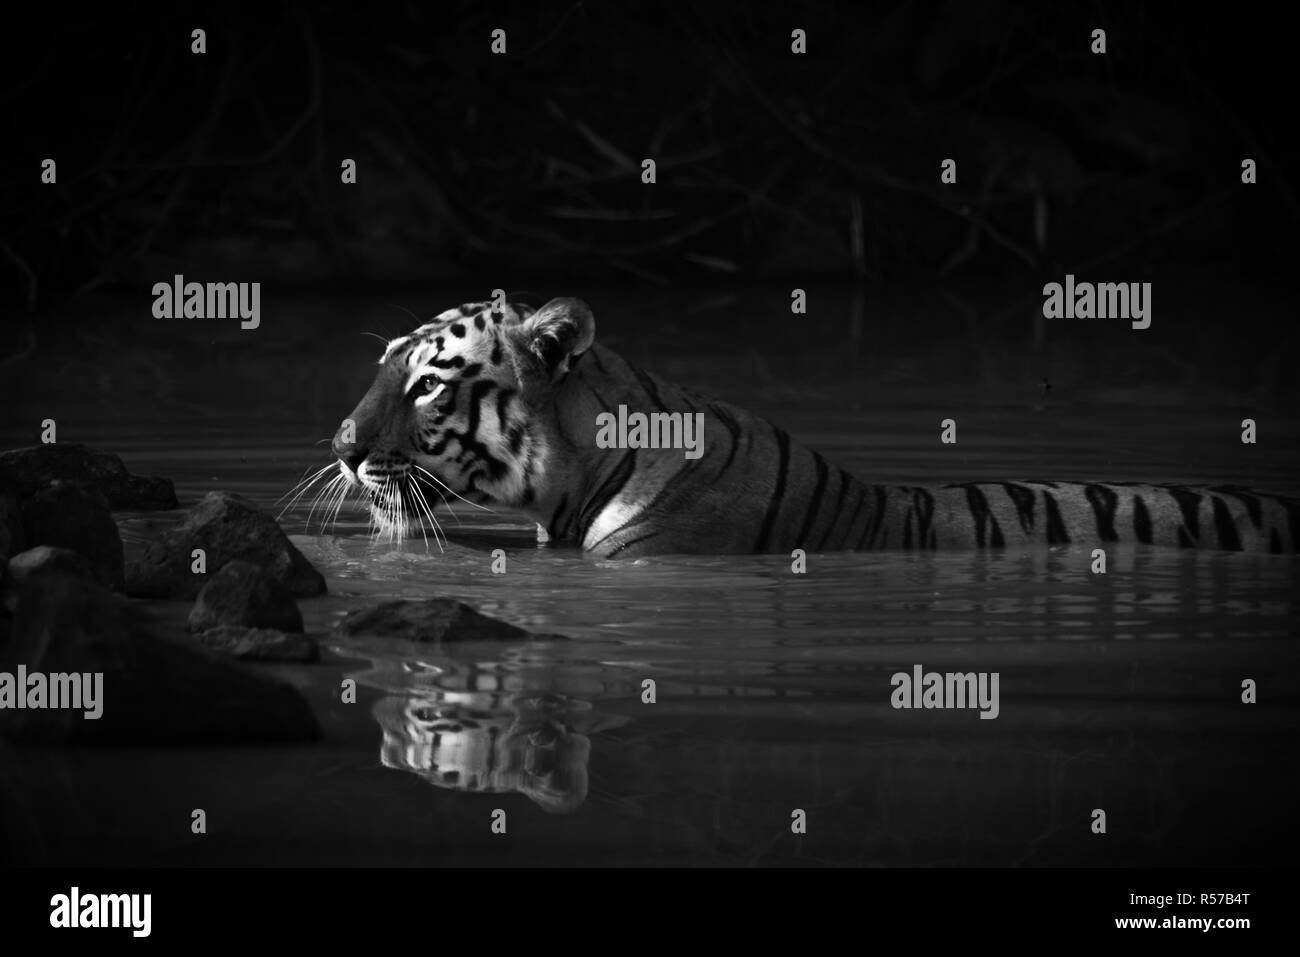 Bengal tiger with catchlight in water mono - Stock Image